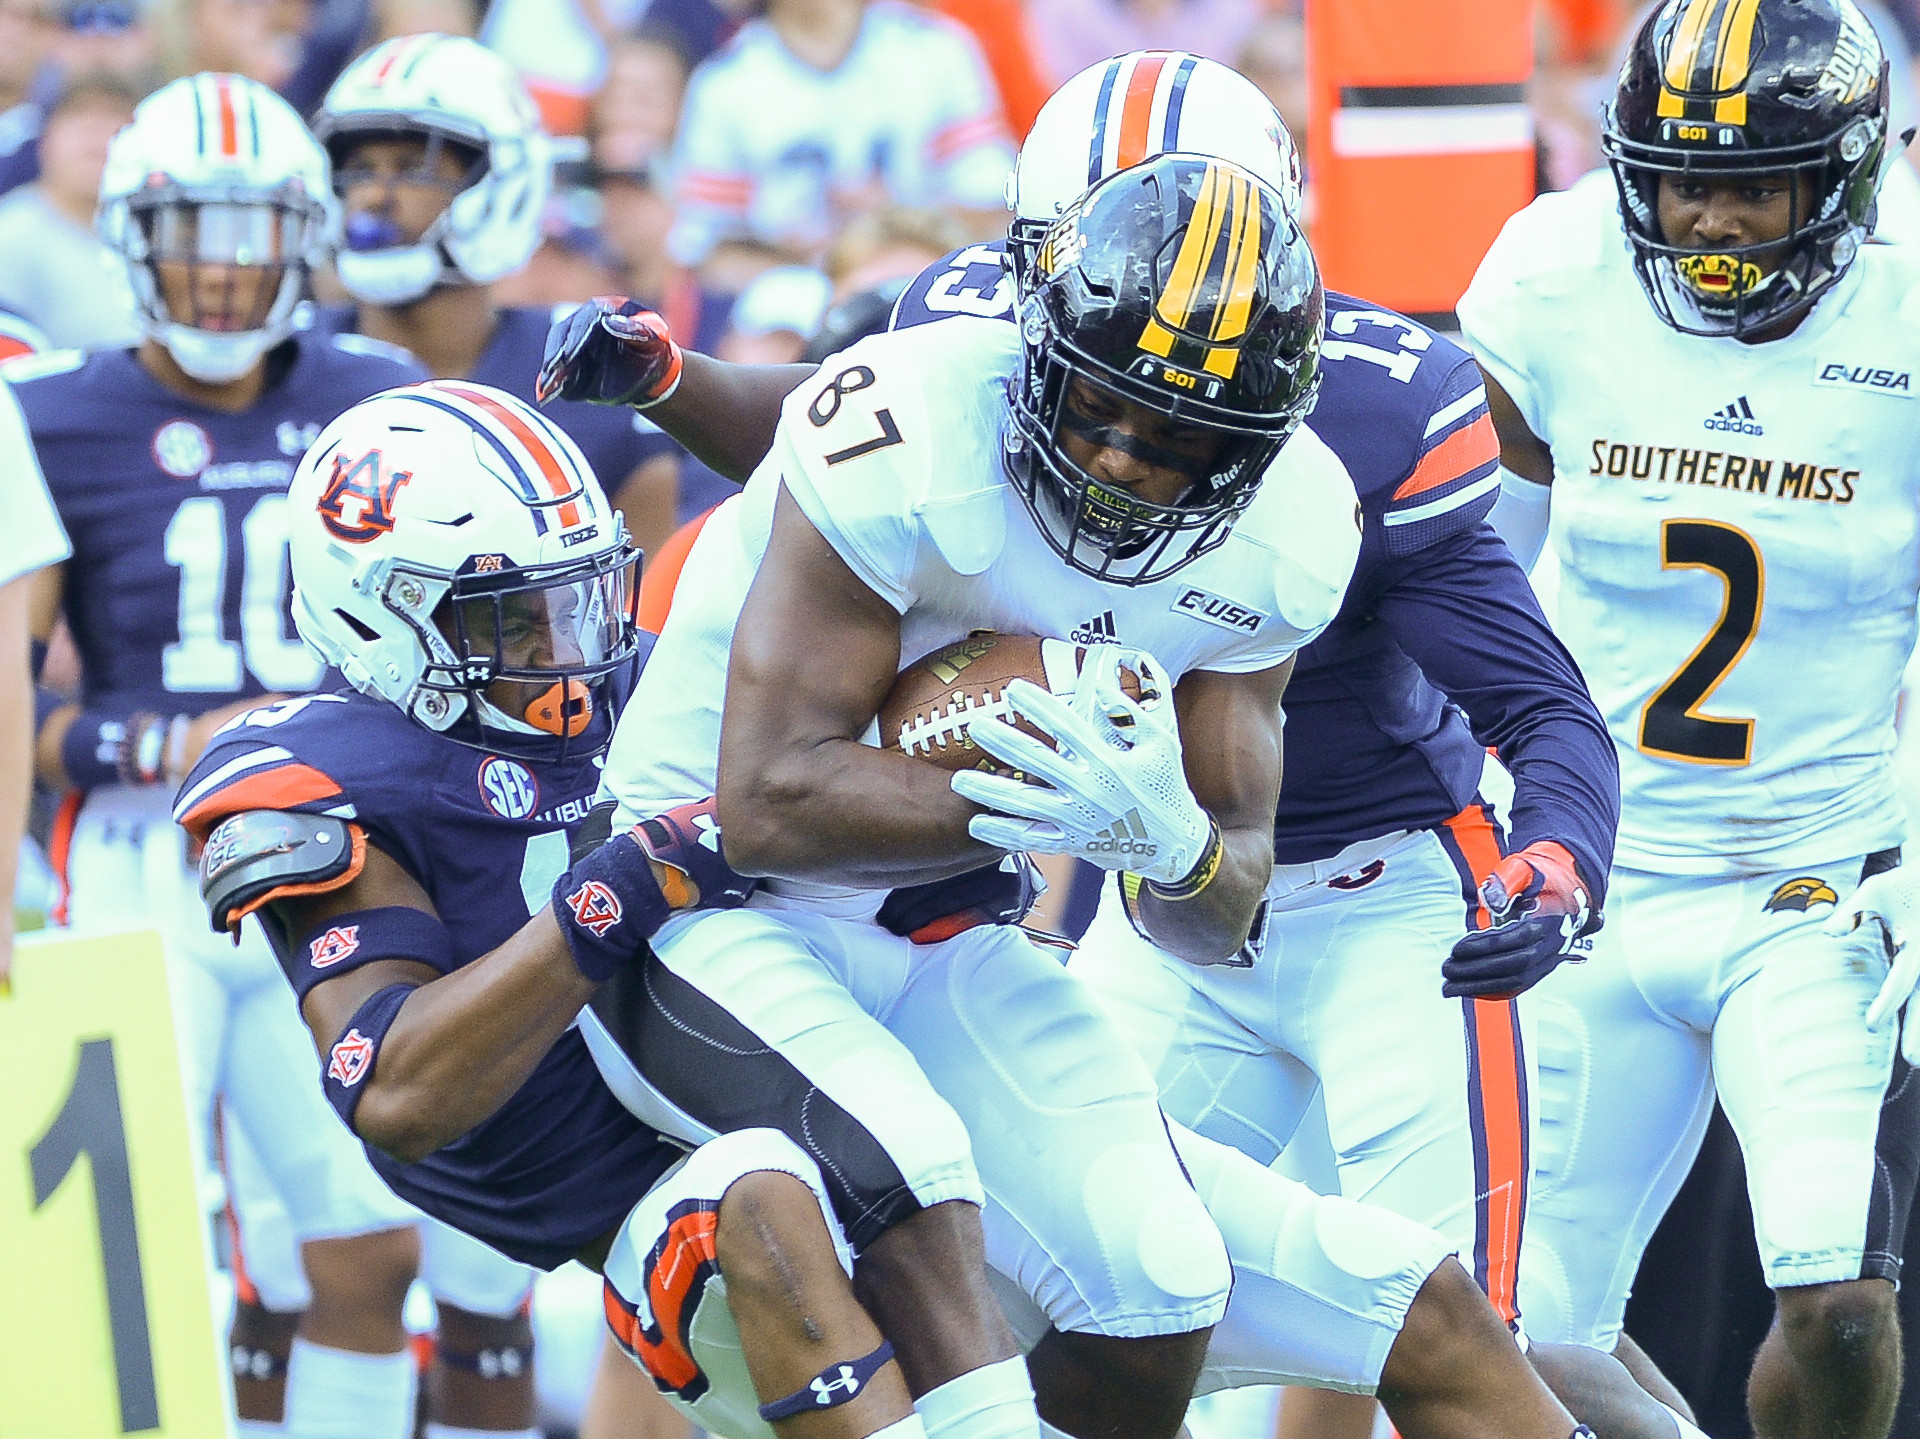 Southern Miss Golden Eagles wide receiver Tim Jones (87) is brought down by Auburn Tigers defensive backs Jordyn Peters (15) and Javaris Davis (13) during the first half of Saturday's game, at Jordan Hare Stadium in Auburn AL. Daily Mountain Eagle -  Jeff Johnsey